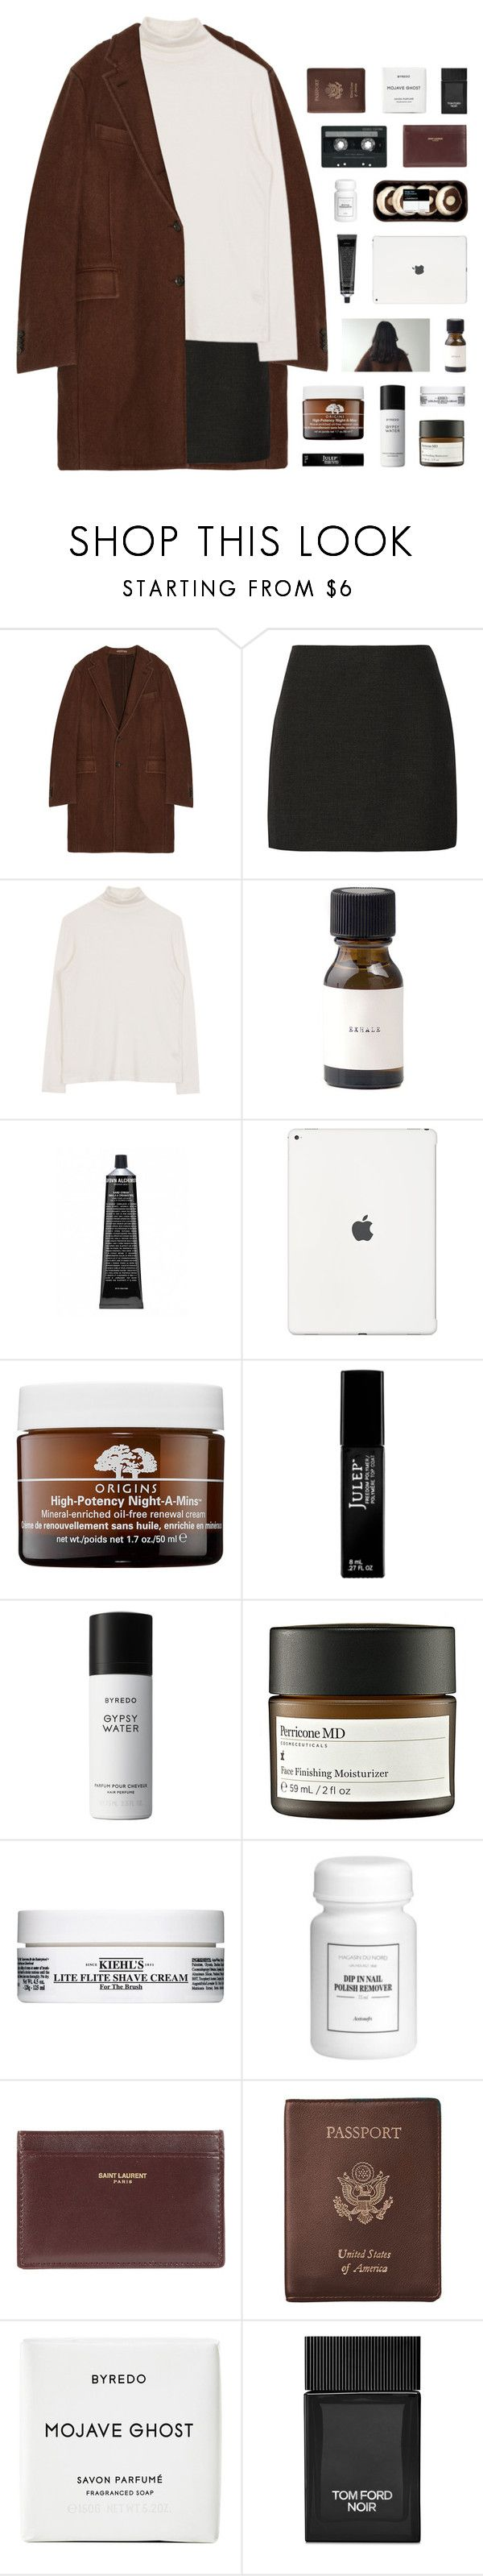 """- aren't we too grown for games? aren't we too grown to play around?"" by p-ureness ❤ liked on Polyvore featuring Boglioli, Alice + Olivia, Origins, Julep, Byredo, Perricone MD, Kiehl's, CASSETTE, Yves Saint Laurent and Royce Leather"